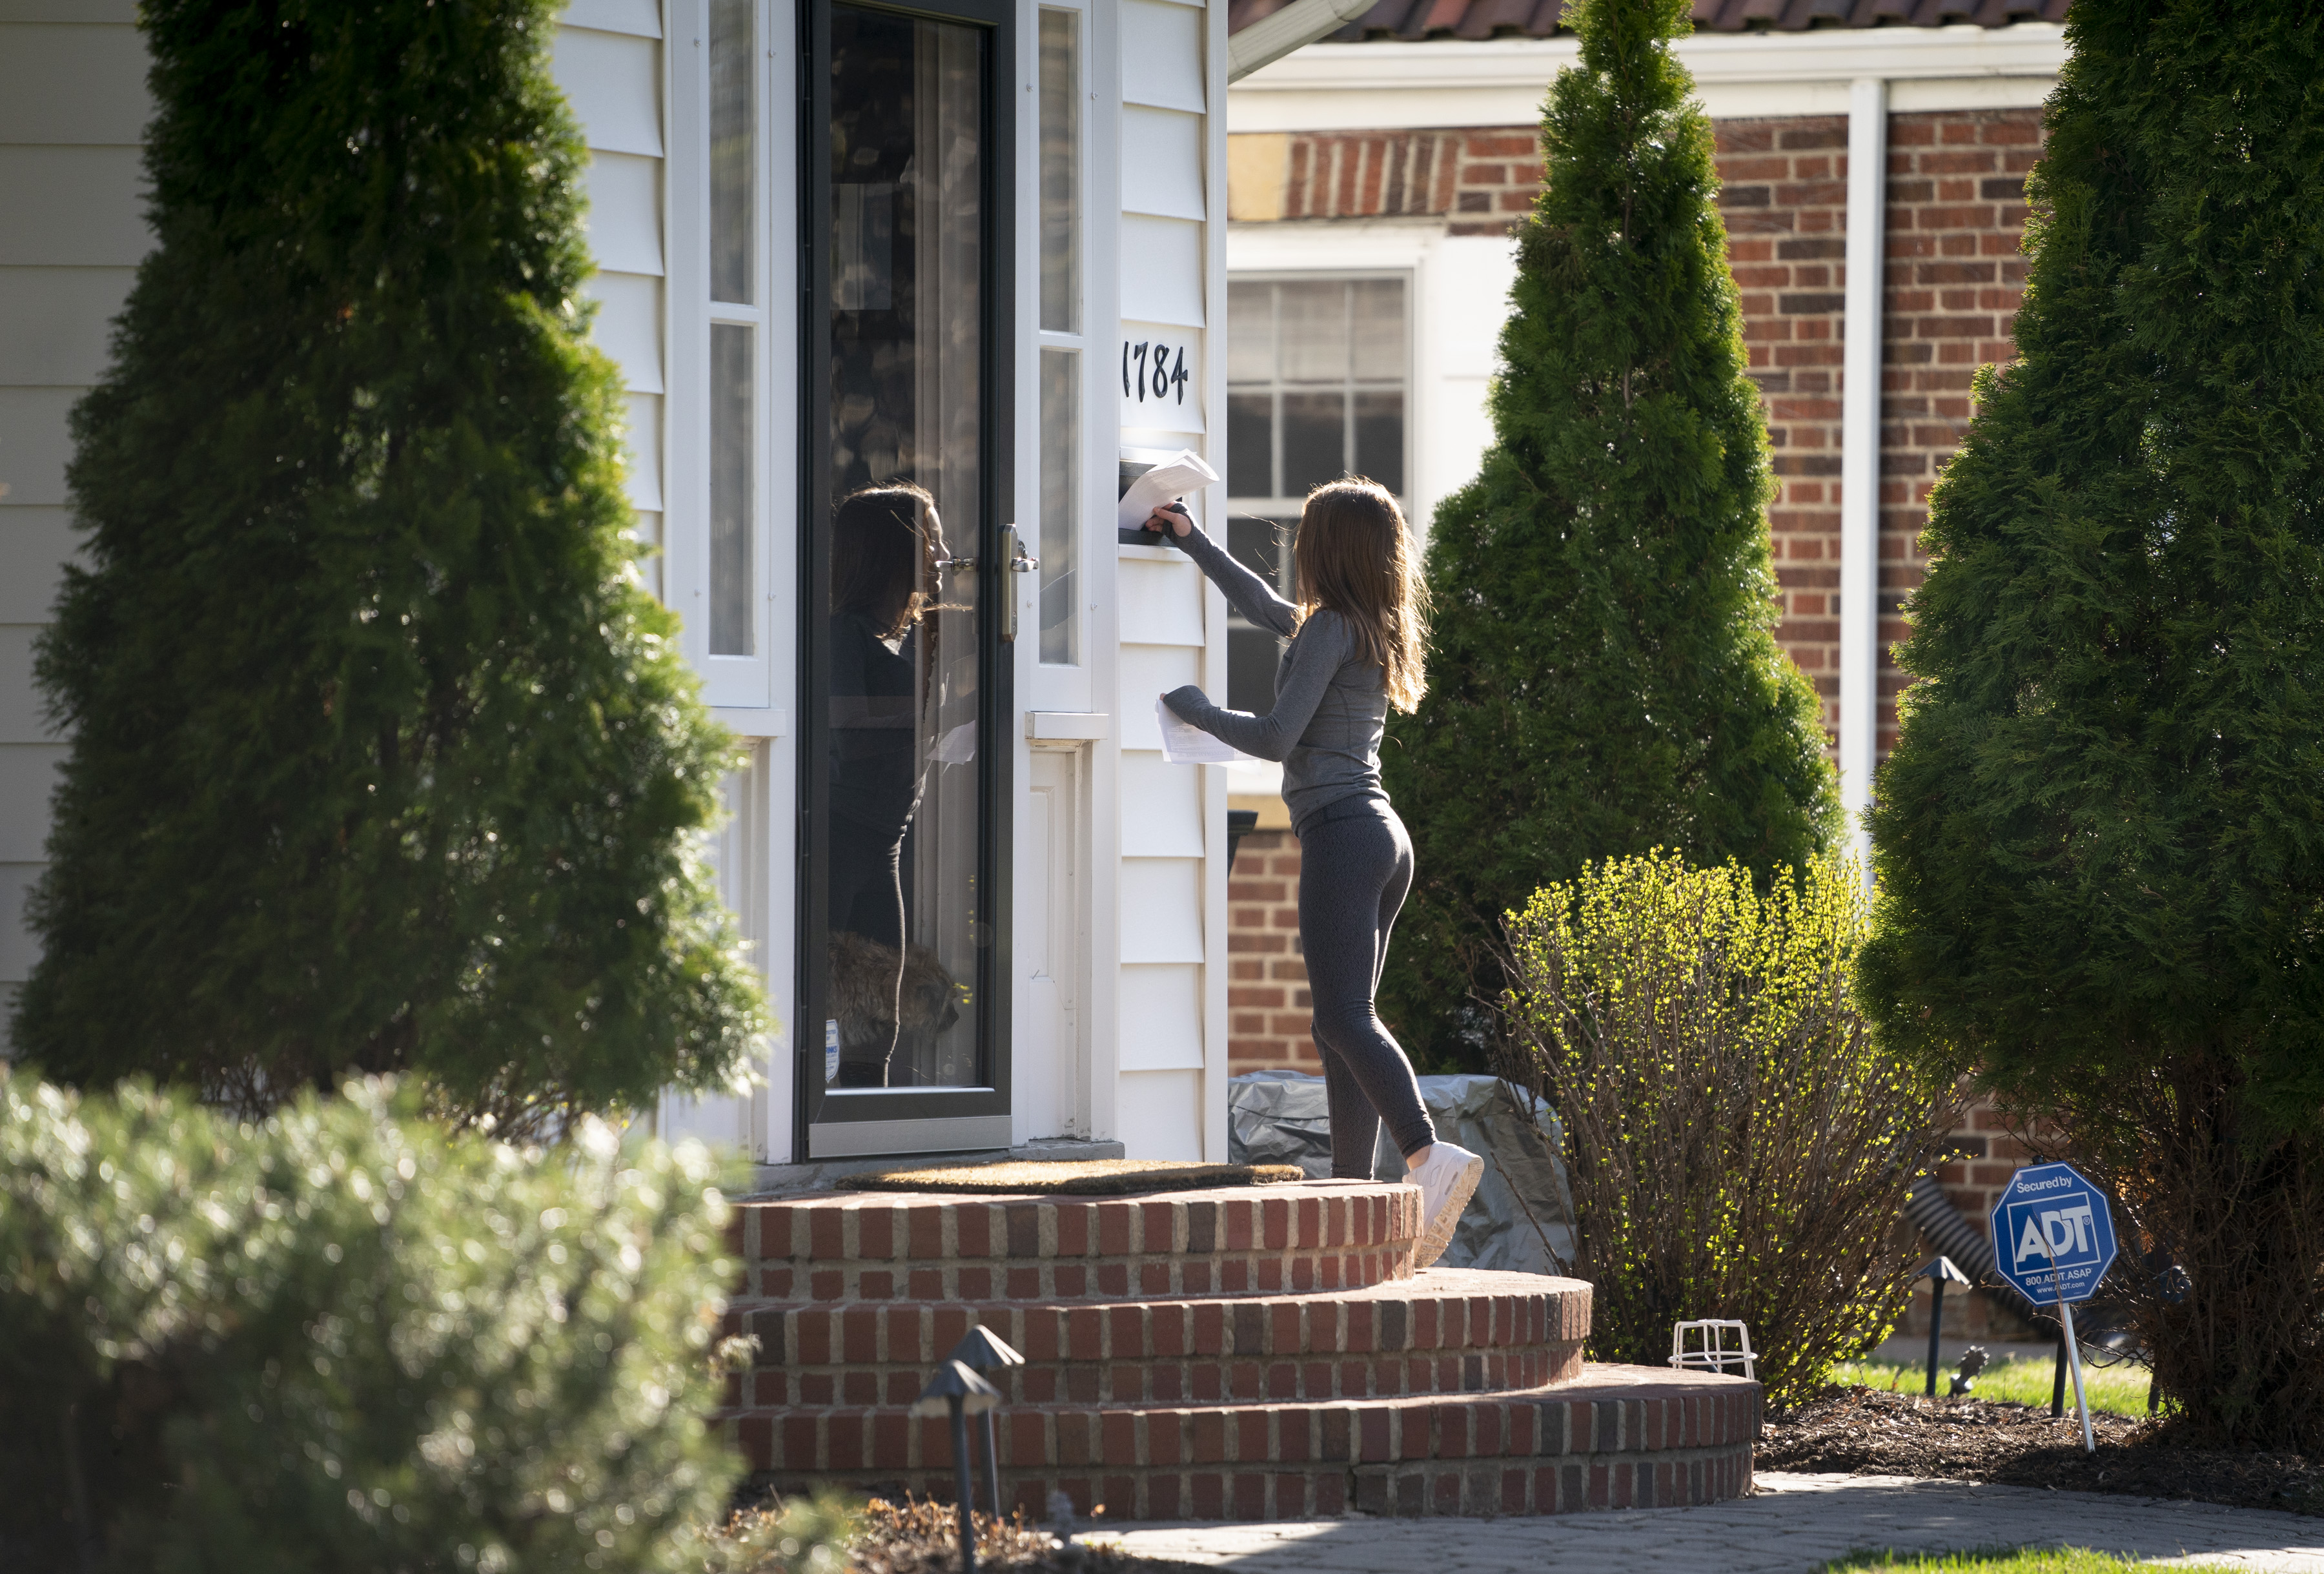 Maddie Pierce, 13, delivered the daily newspaper she and her sister and two neighbor siblings make for their neighborhood.